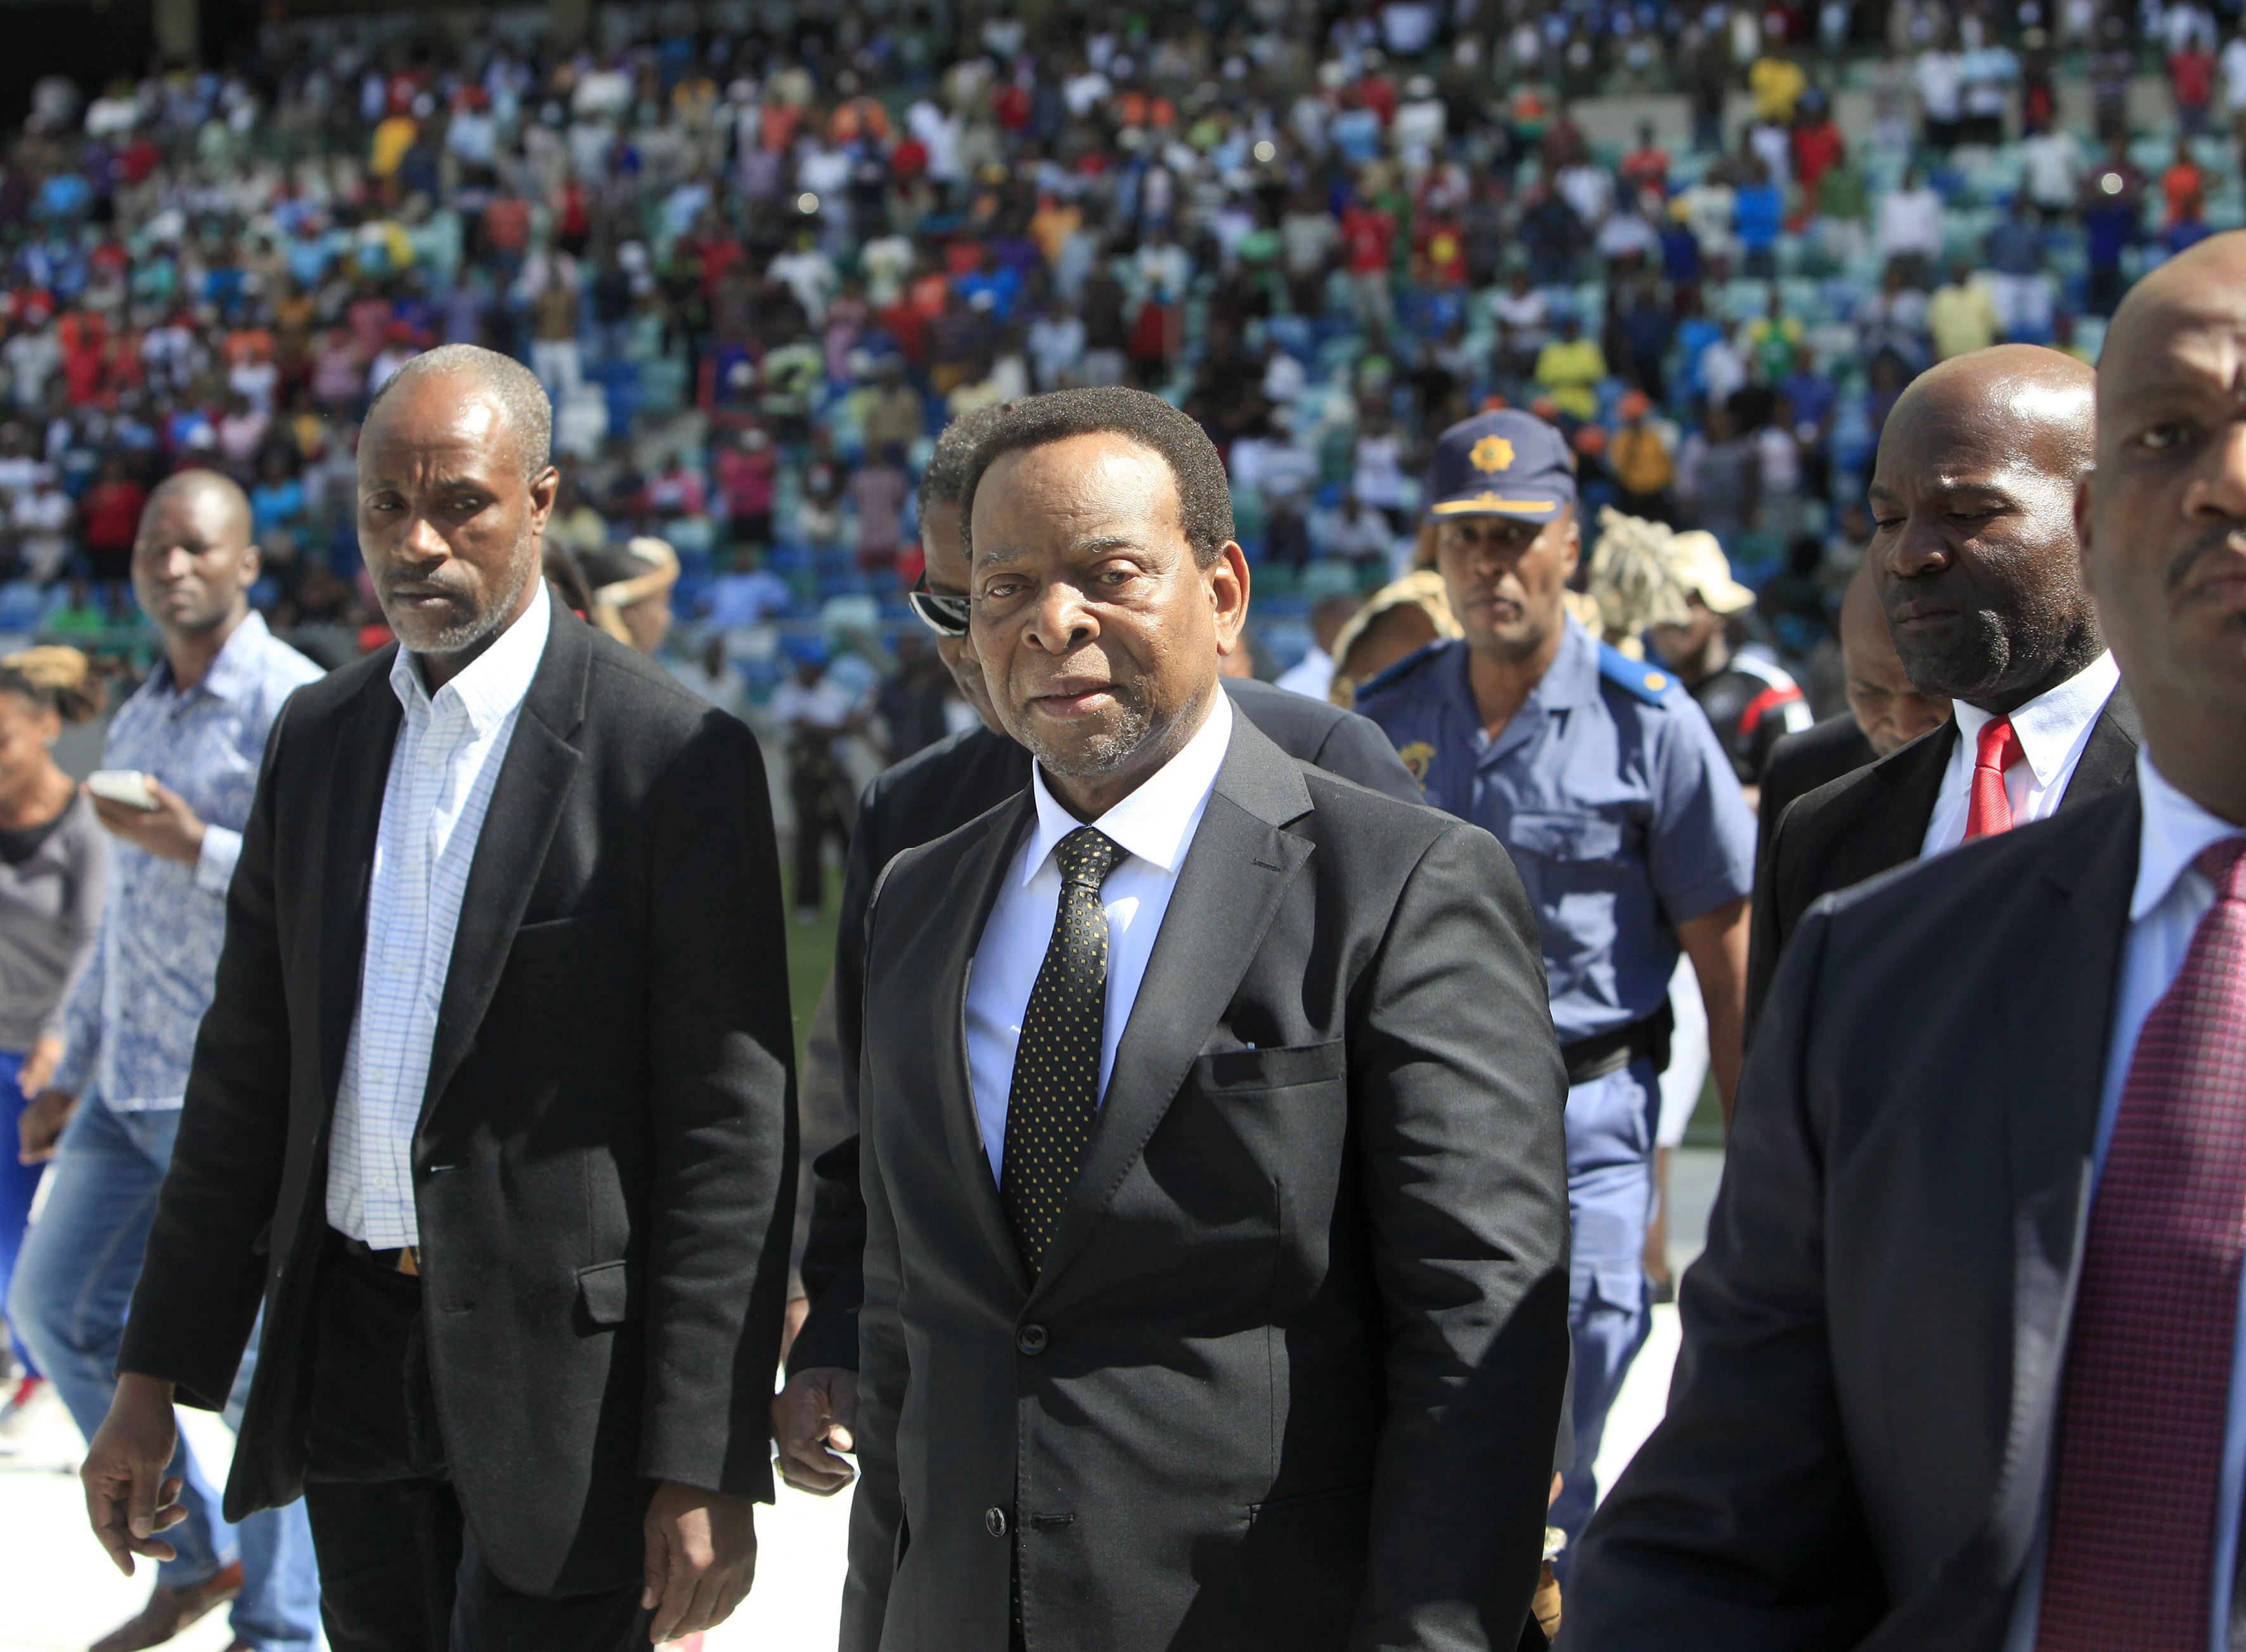 Zulu King Goodwill Zwelithini, center, arrives at a Zulu gathering, at the Moses Mabhida Stadium, in Durban, South Africa, Monday, April 20, 2015. He has condemned recent deadly attacks on immigrants following reported comments in which he said foreigners should leave the country. Zwelithini, an influential figure among the Zulu ethnic group, said the violence was unacceptable in a speech Monday at a sports stadium in Durban, a coastal city where six people have died in anti-immigrant violence. (AP Photo)